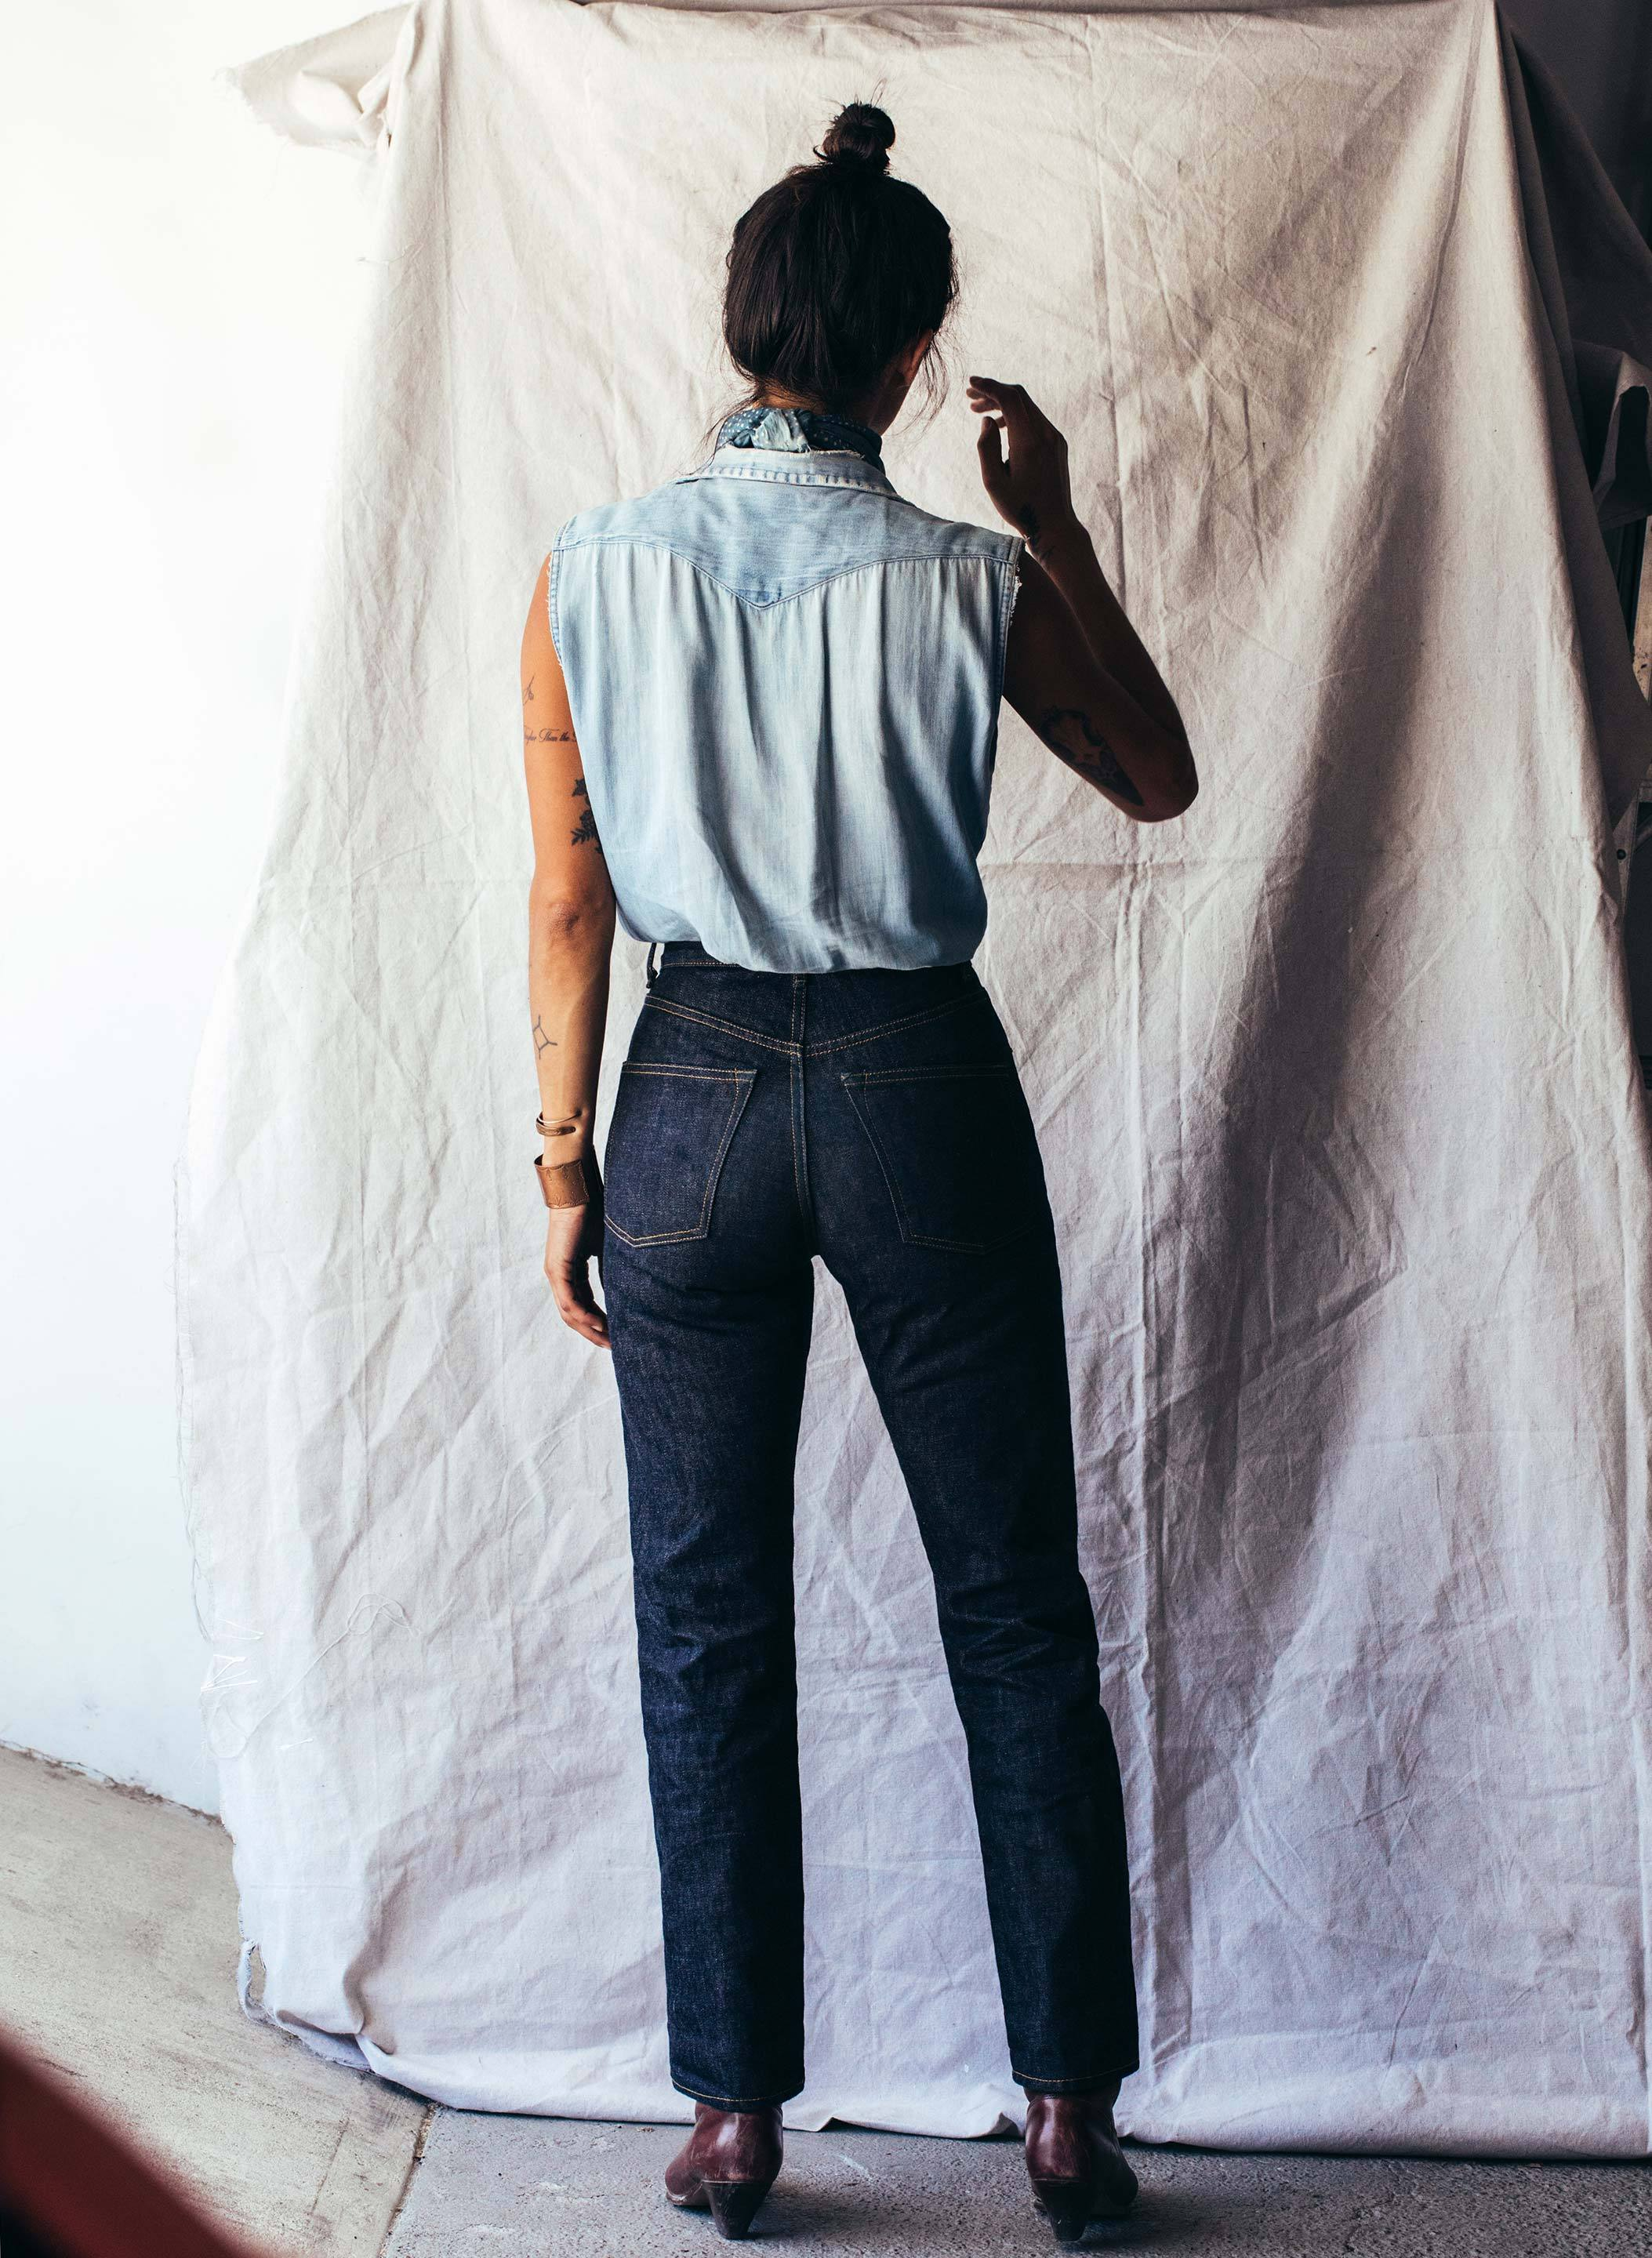 imogene + willie - harper selvage rinse